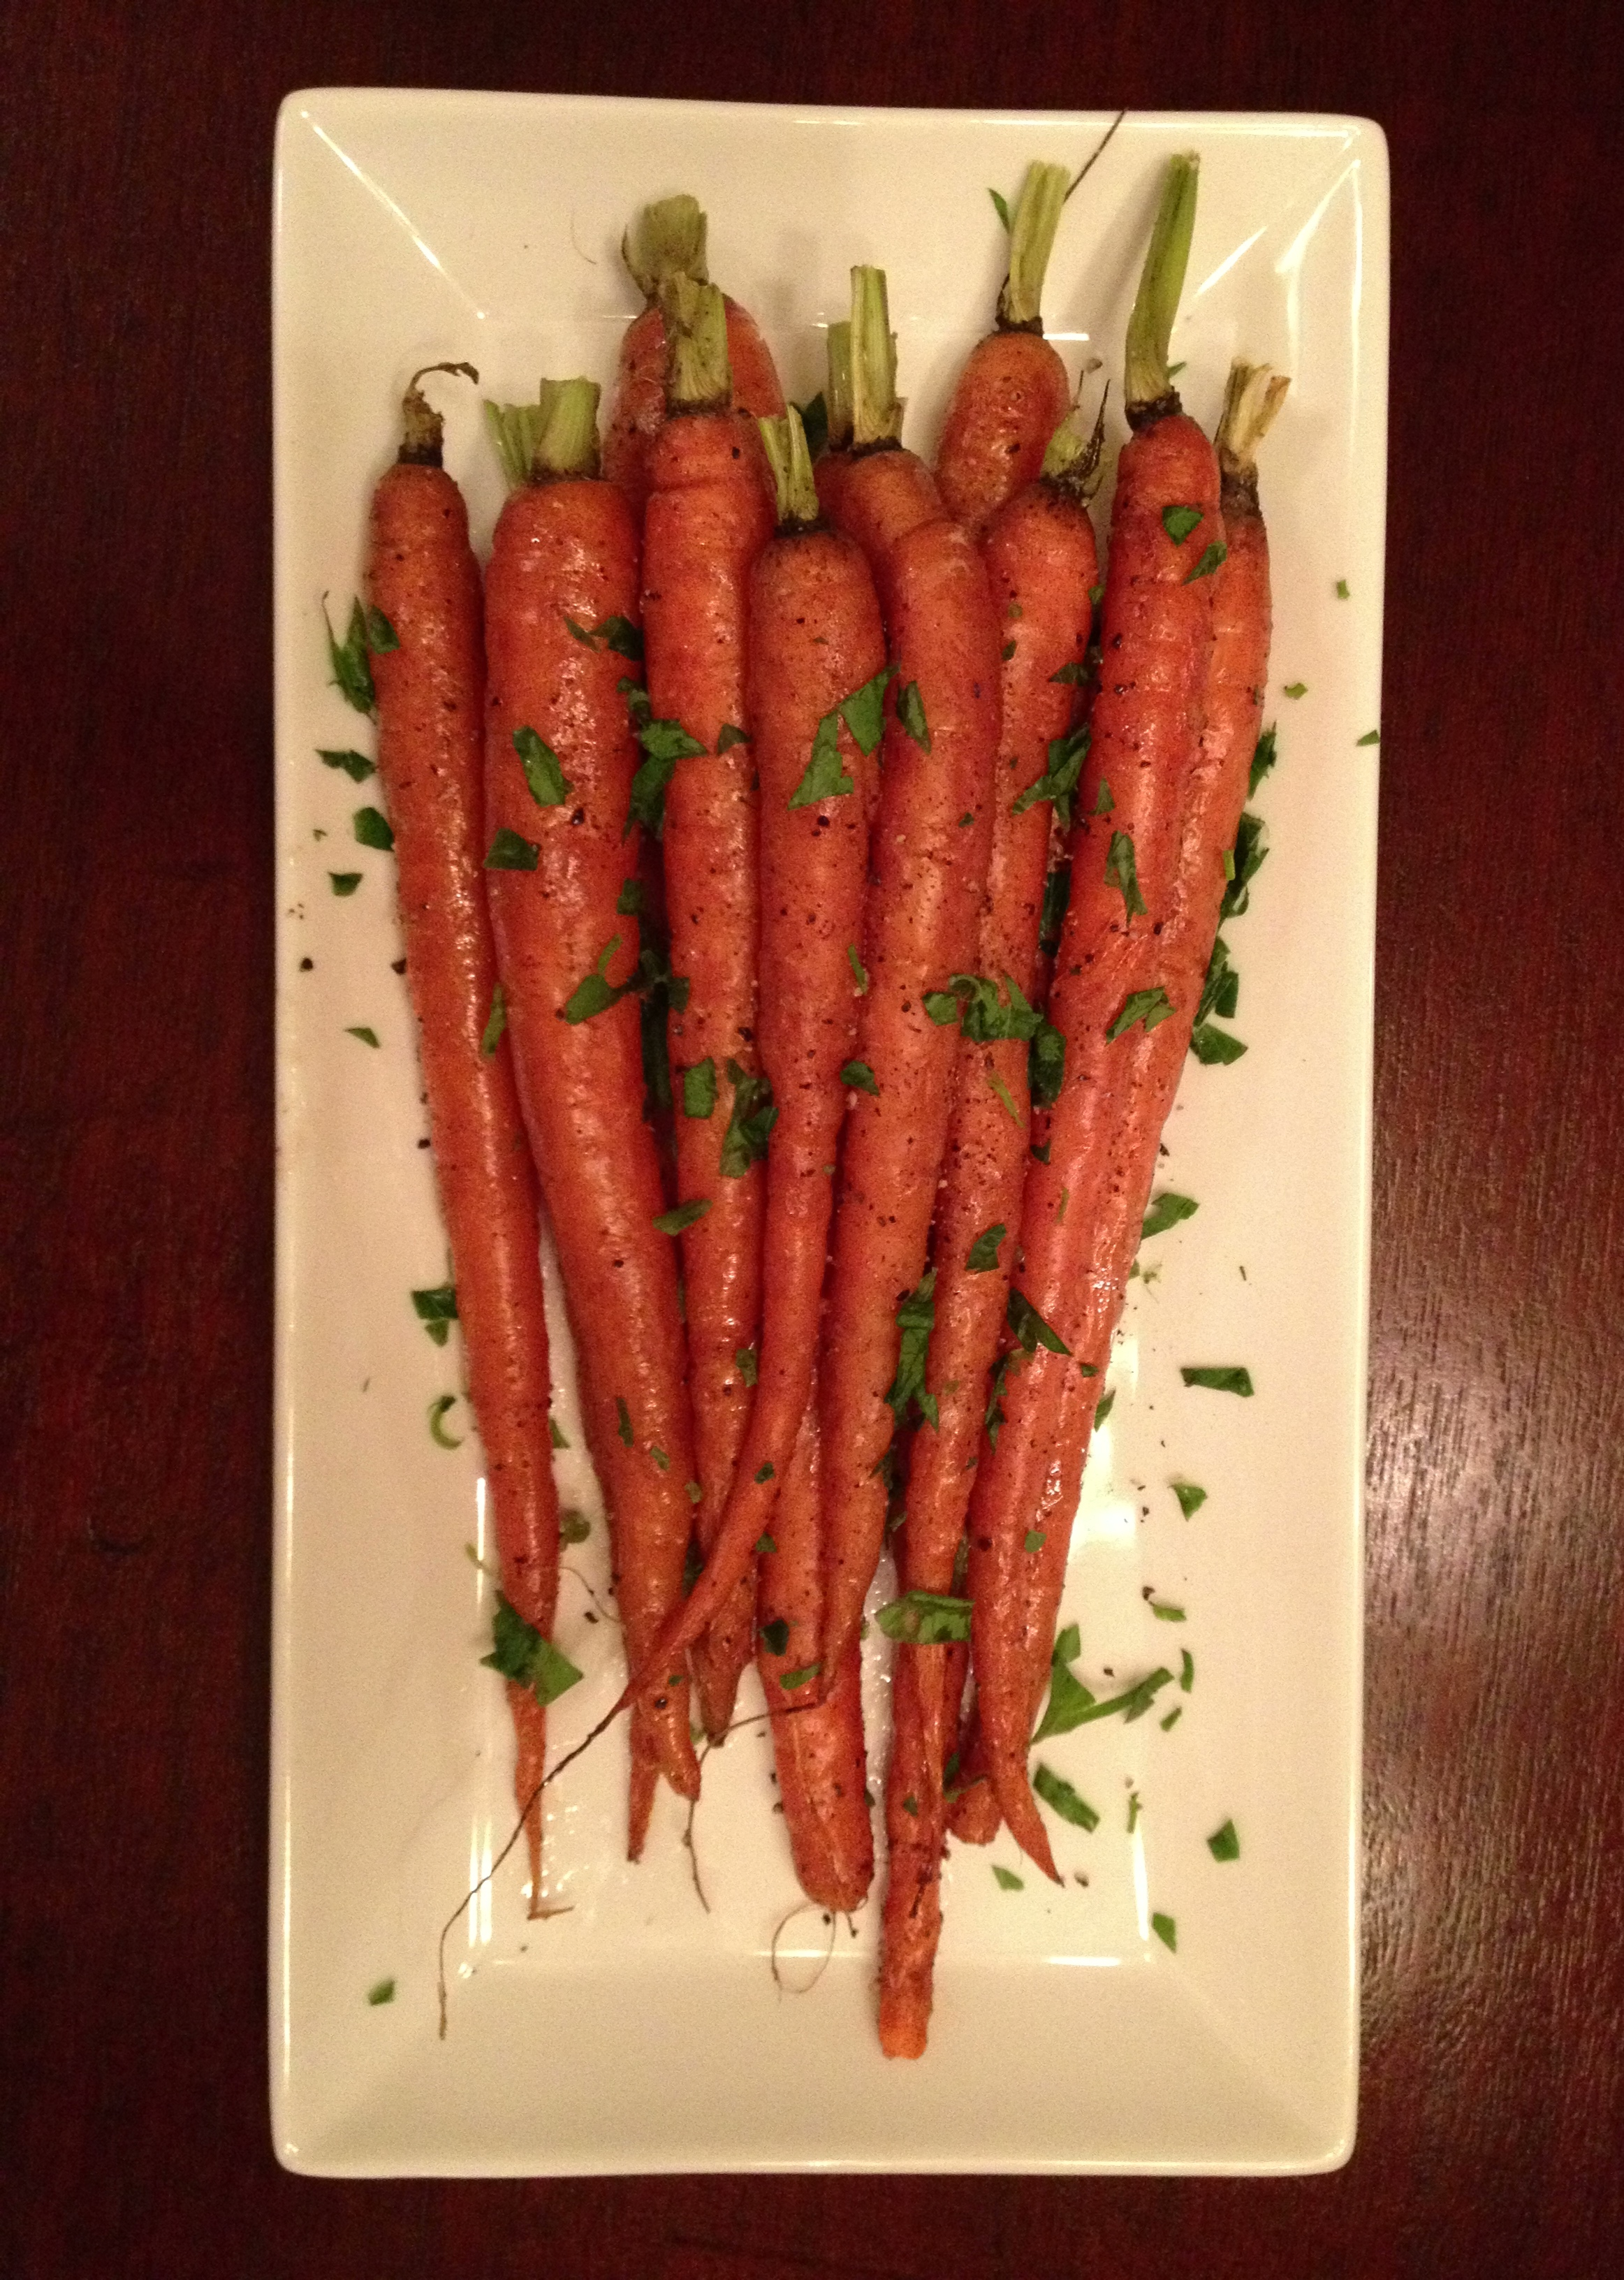 Simple Roasted Carrots from www.meganopel.com